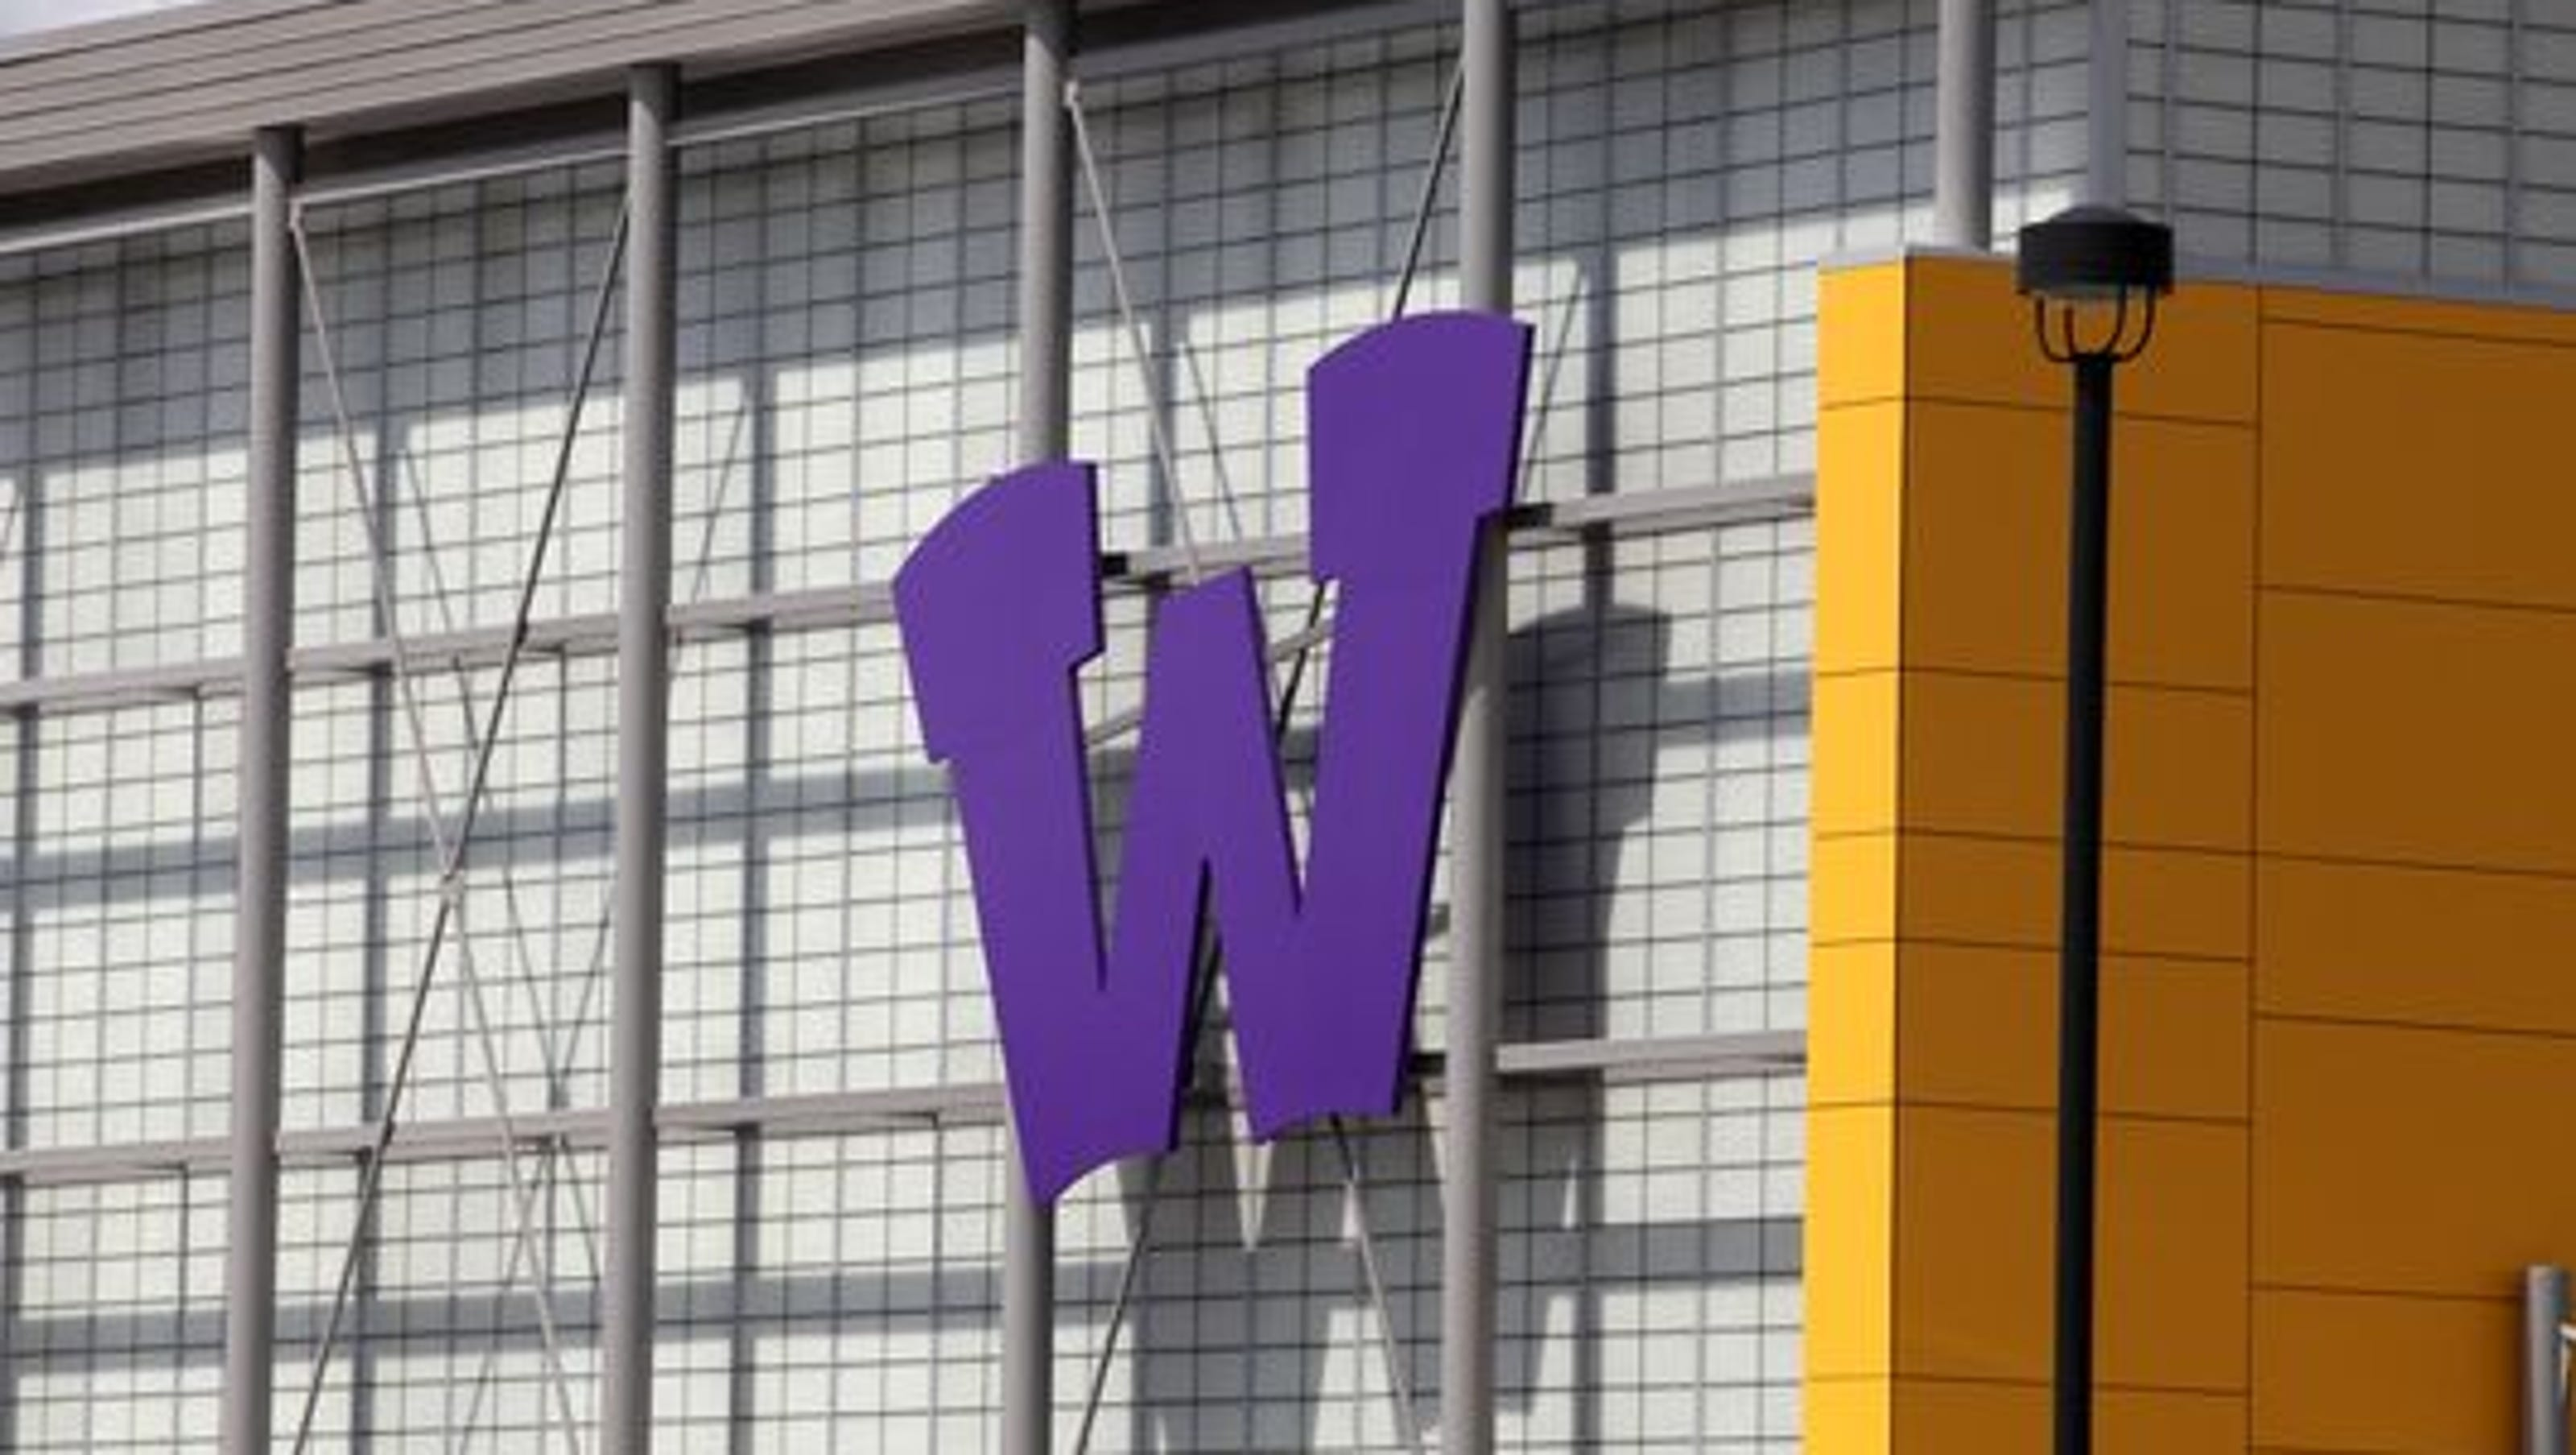 Waukee taxpayers call for firing of superintendent, COO in wake of state audit